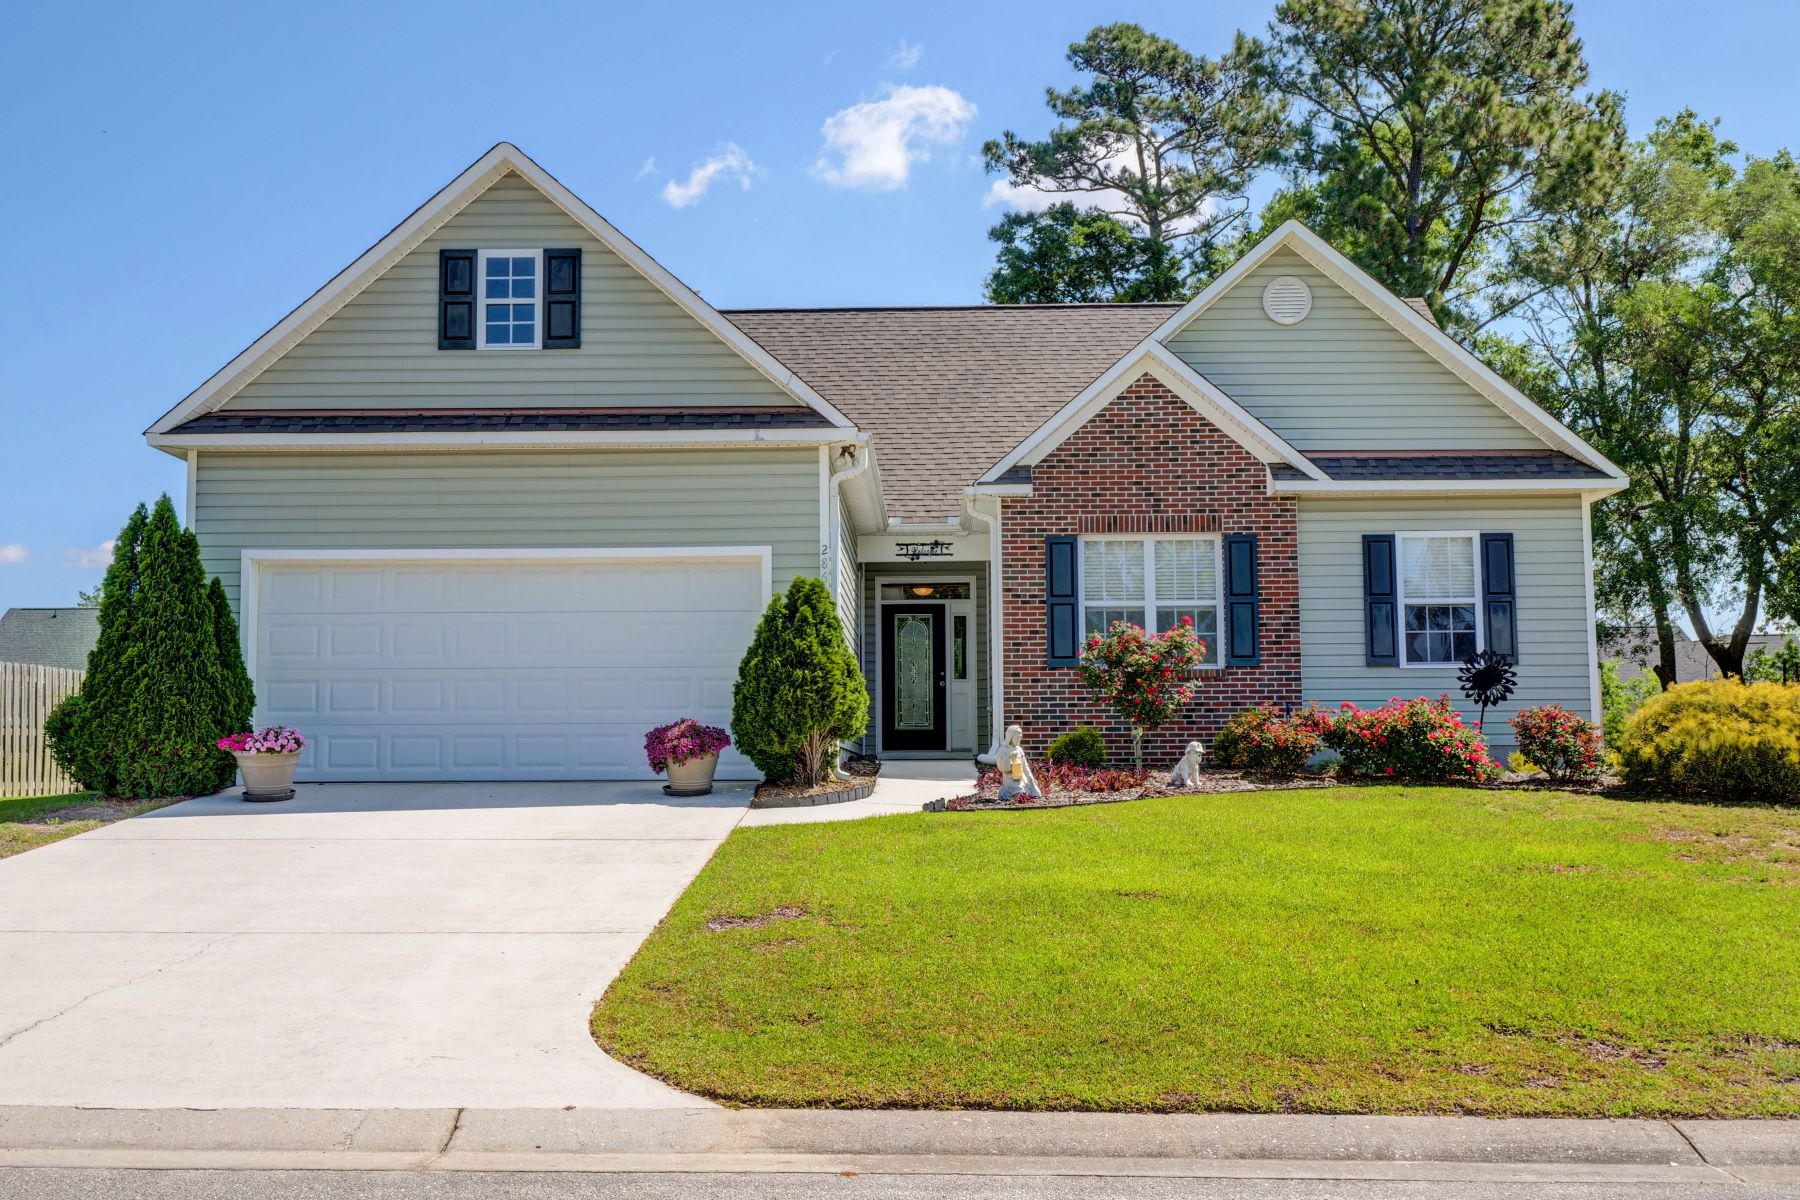 Single Family Homes for Active at Charming Ranch Style Home 286 Emerald Drive Hampstead, North Carolina 28443 United States